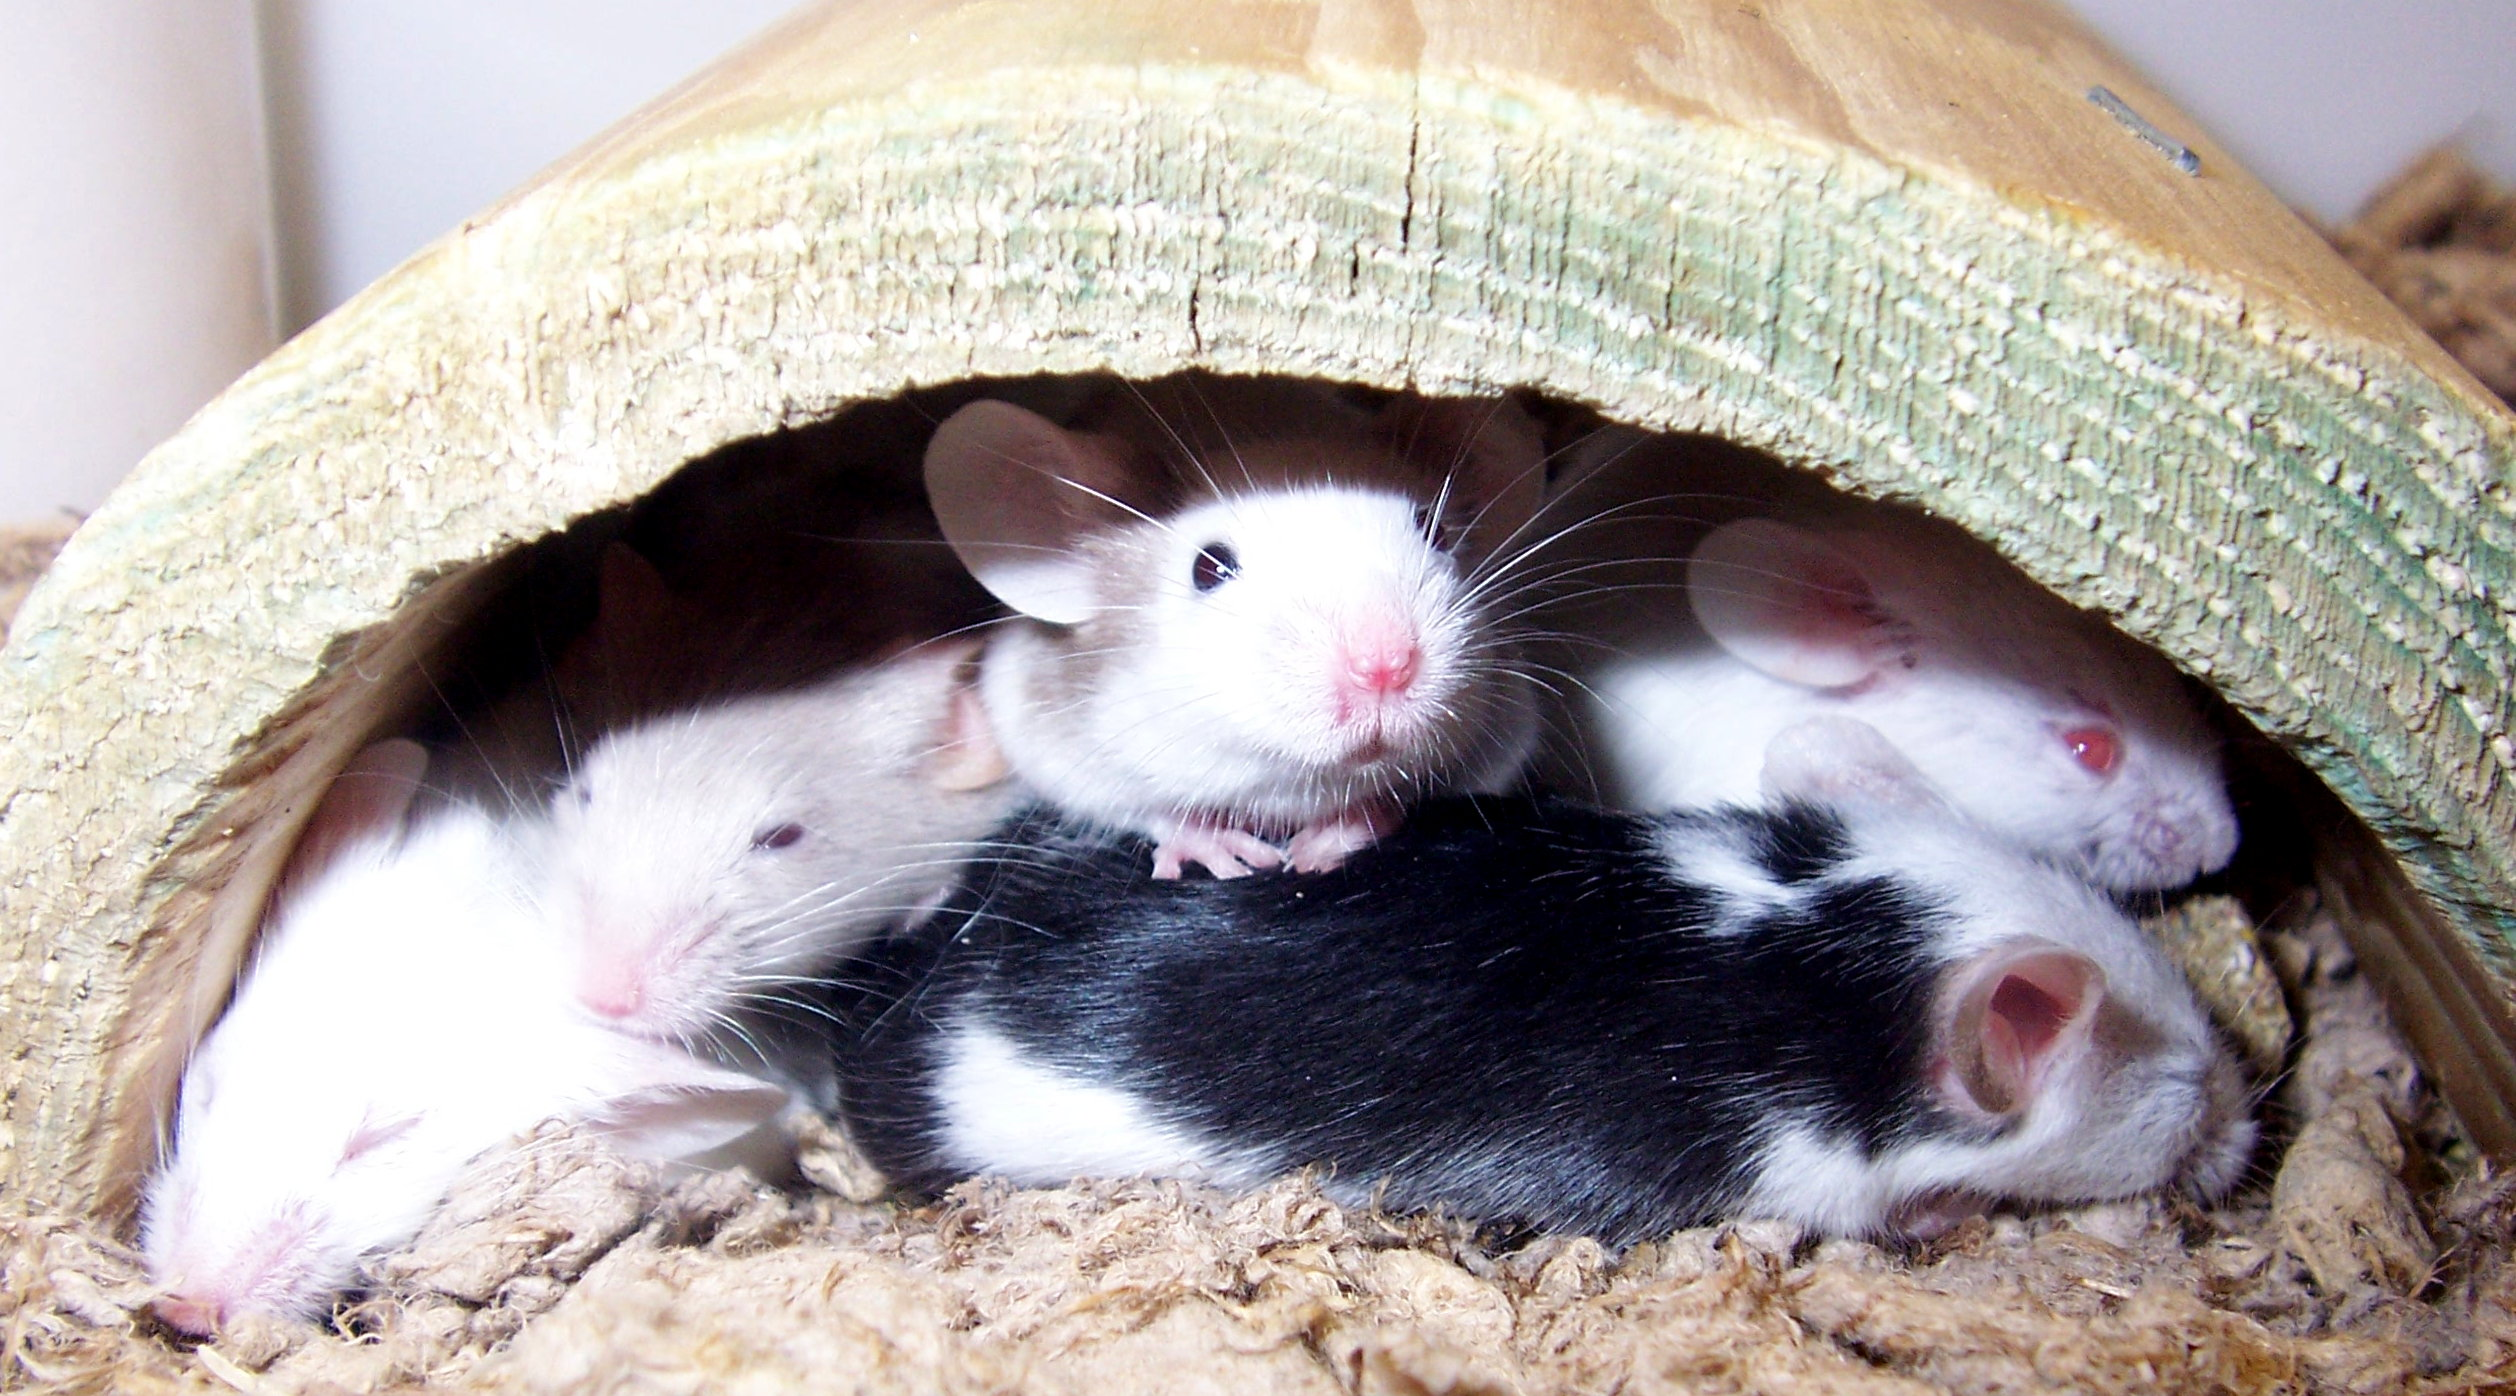 Rodents as pets - Wikipedia